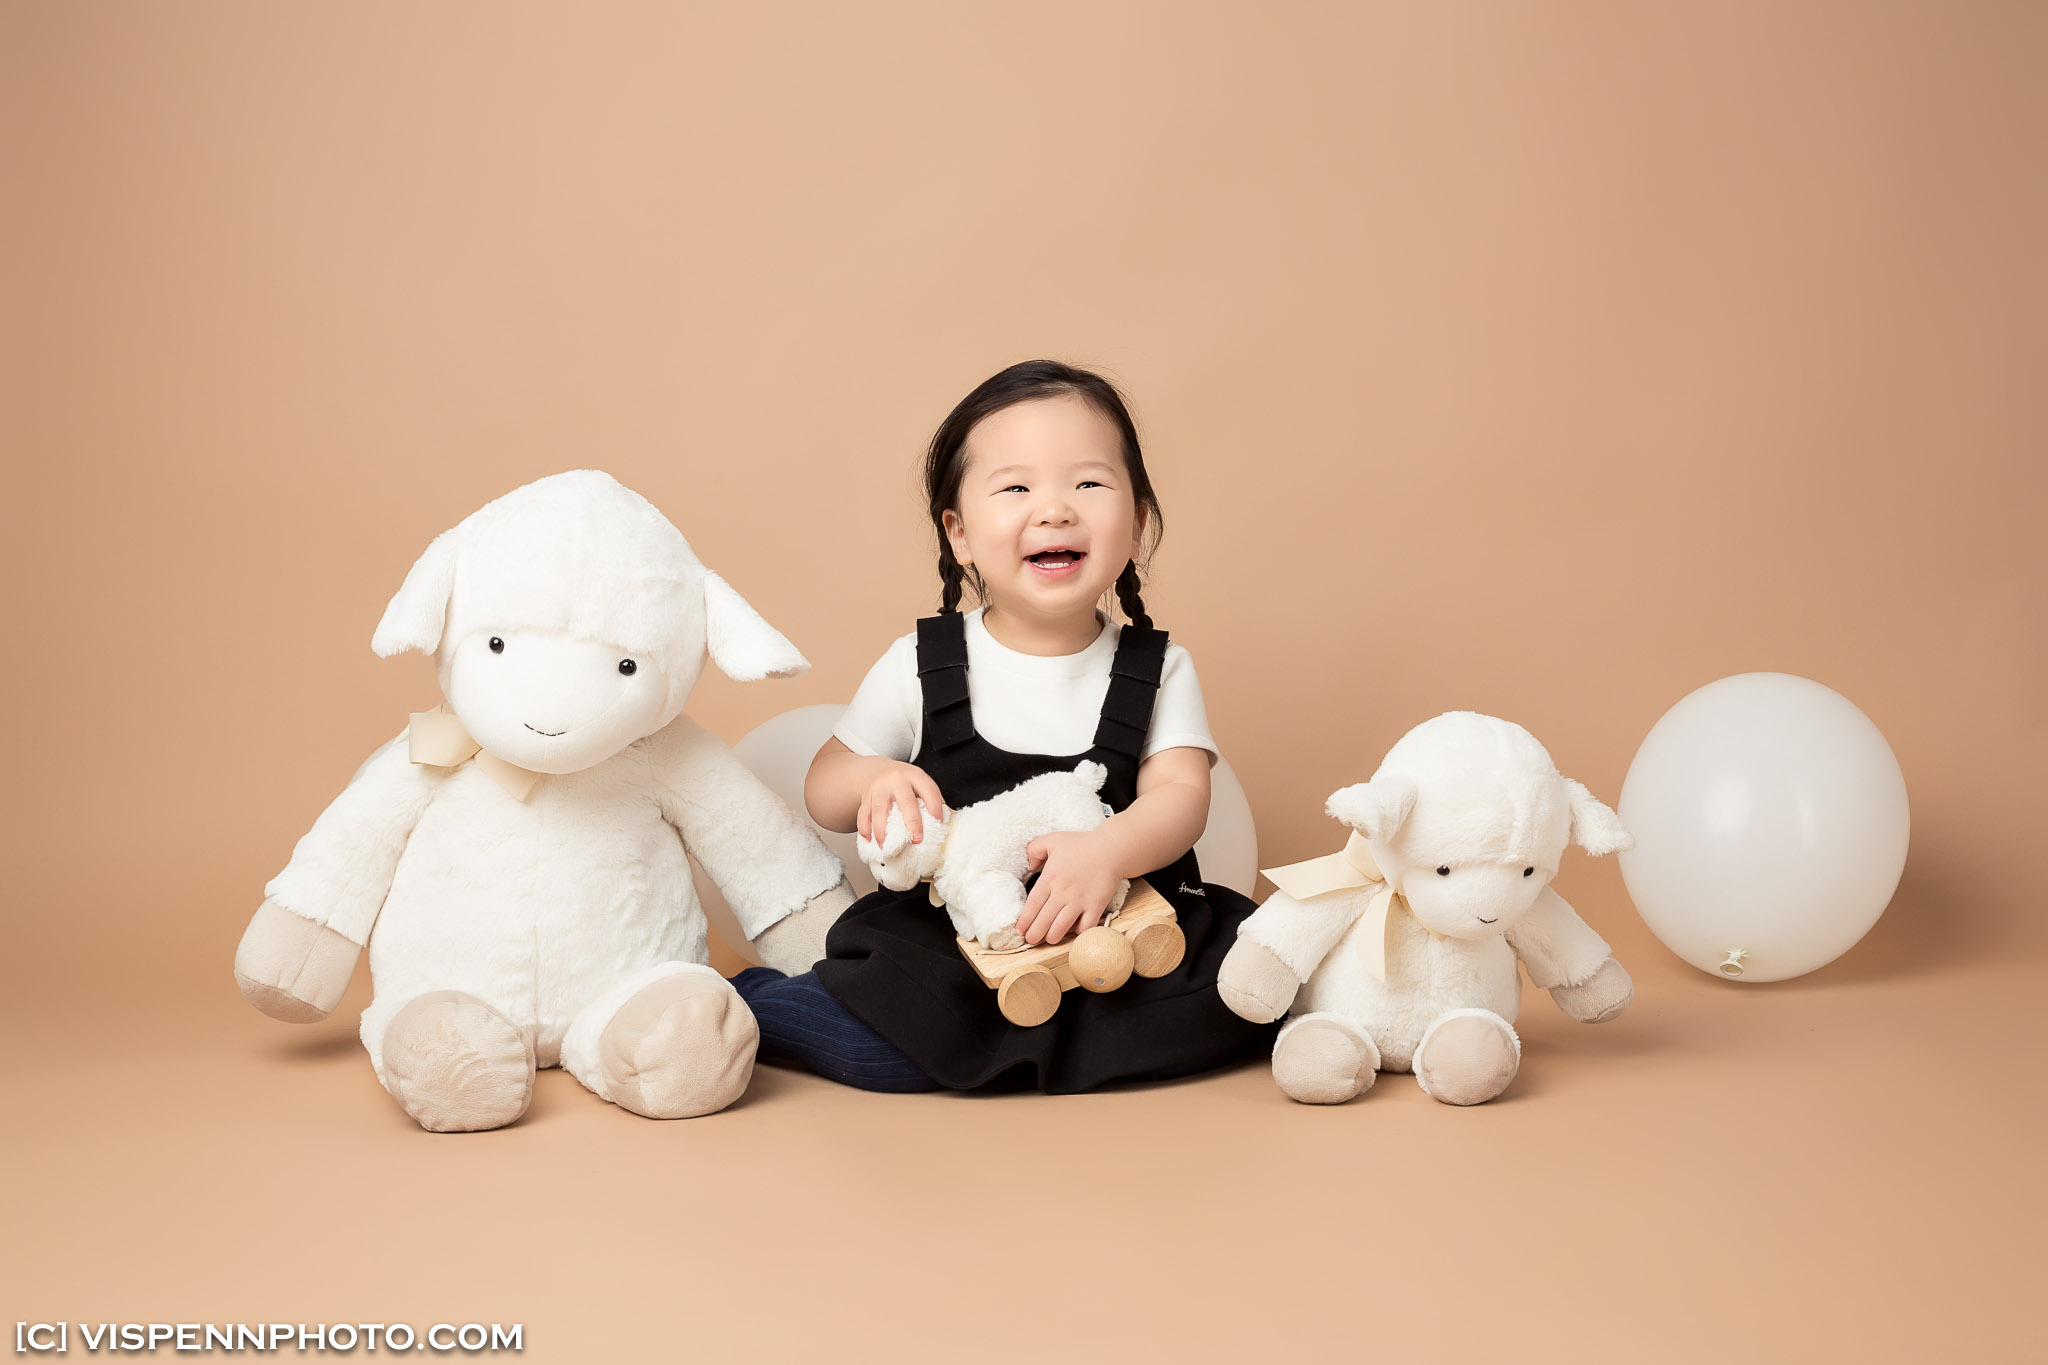 Melbourne Newborn Baby Family Photo BaoBao VISPENN 墨尔本 儿童 宝宝 百天照 满月照 孕妇照 全家福 KIDS VISPENN LucasZ 0029